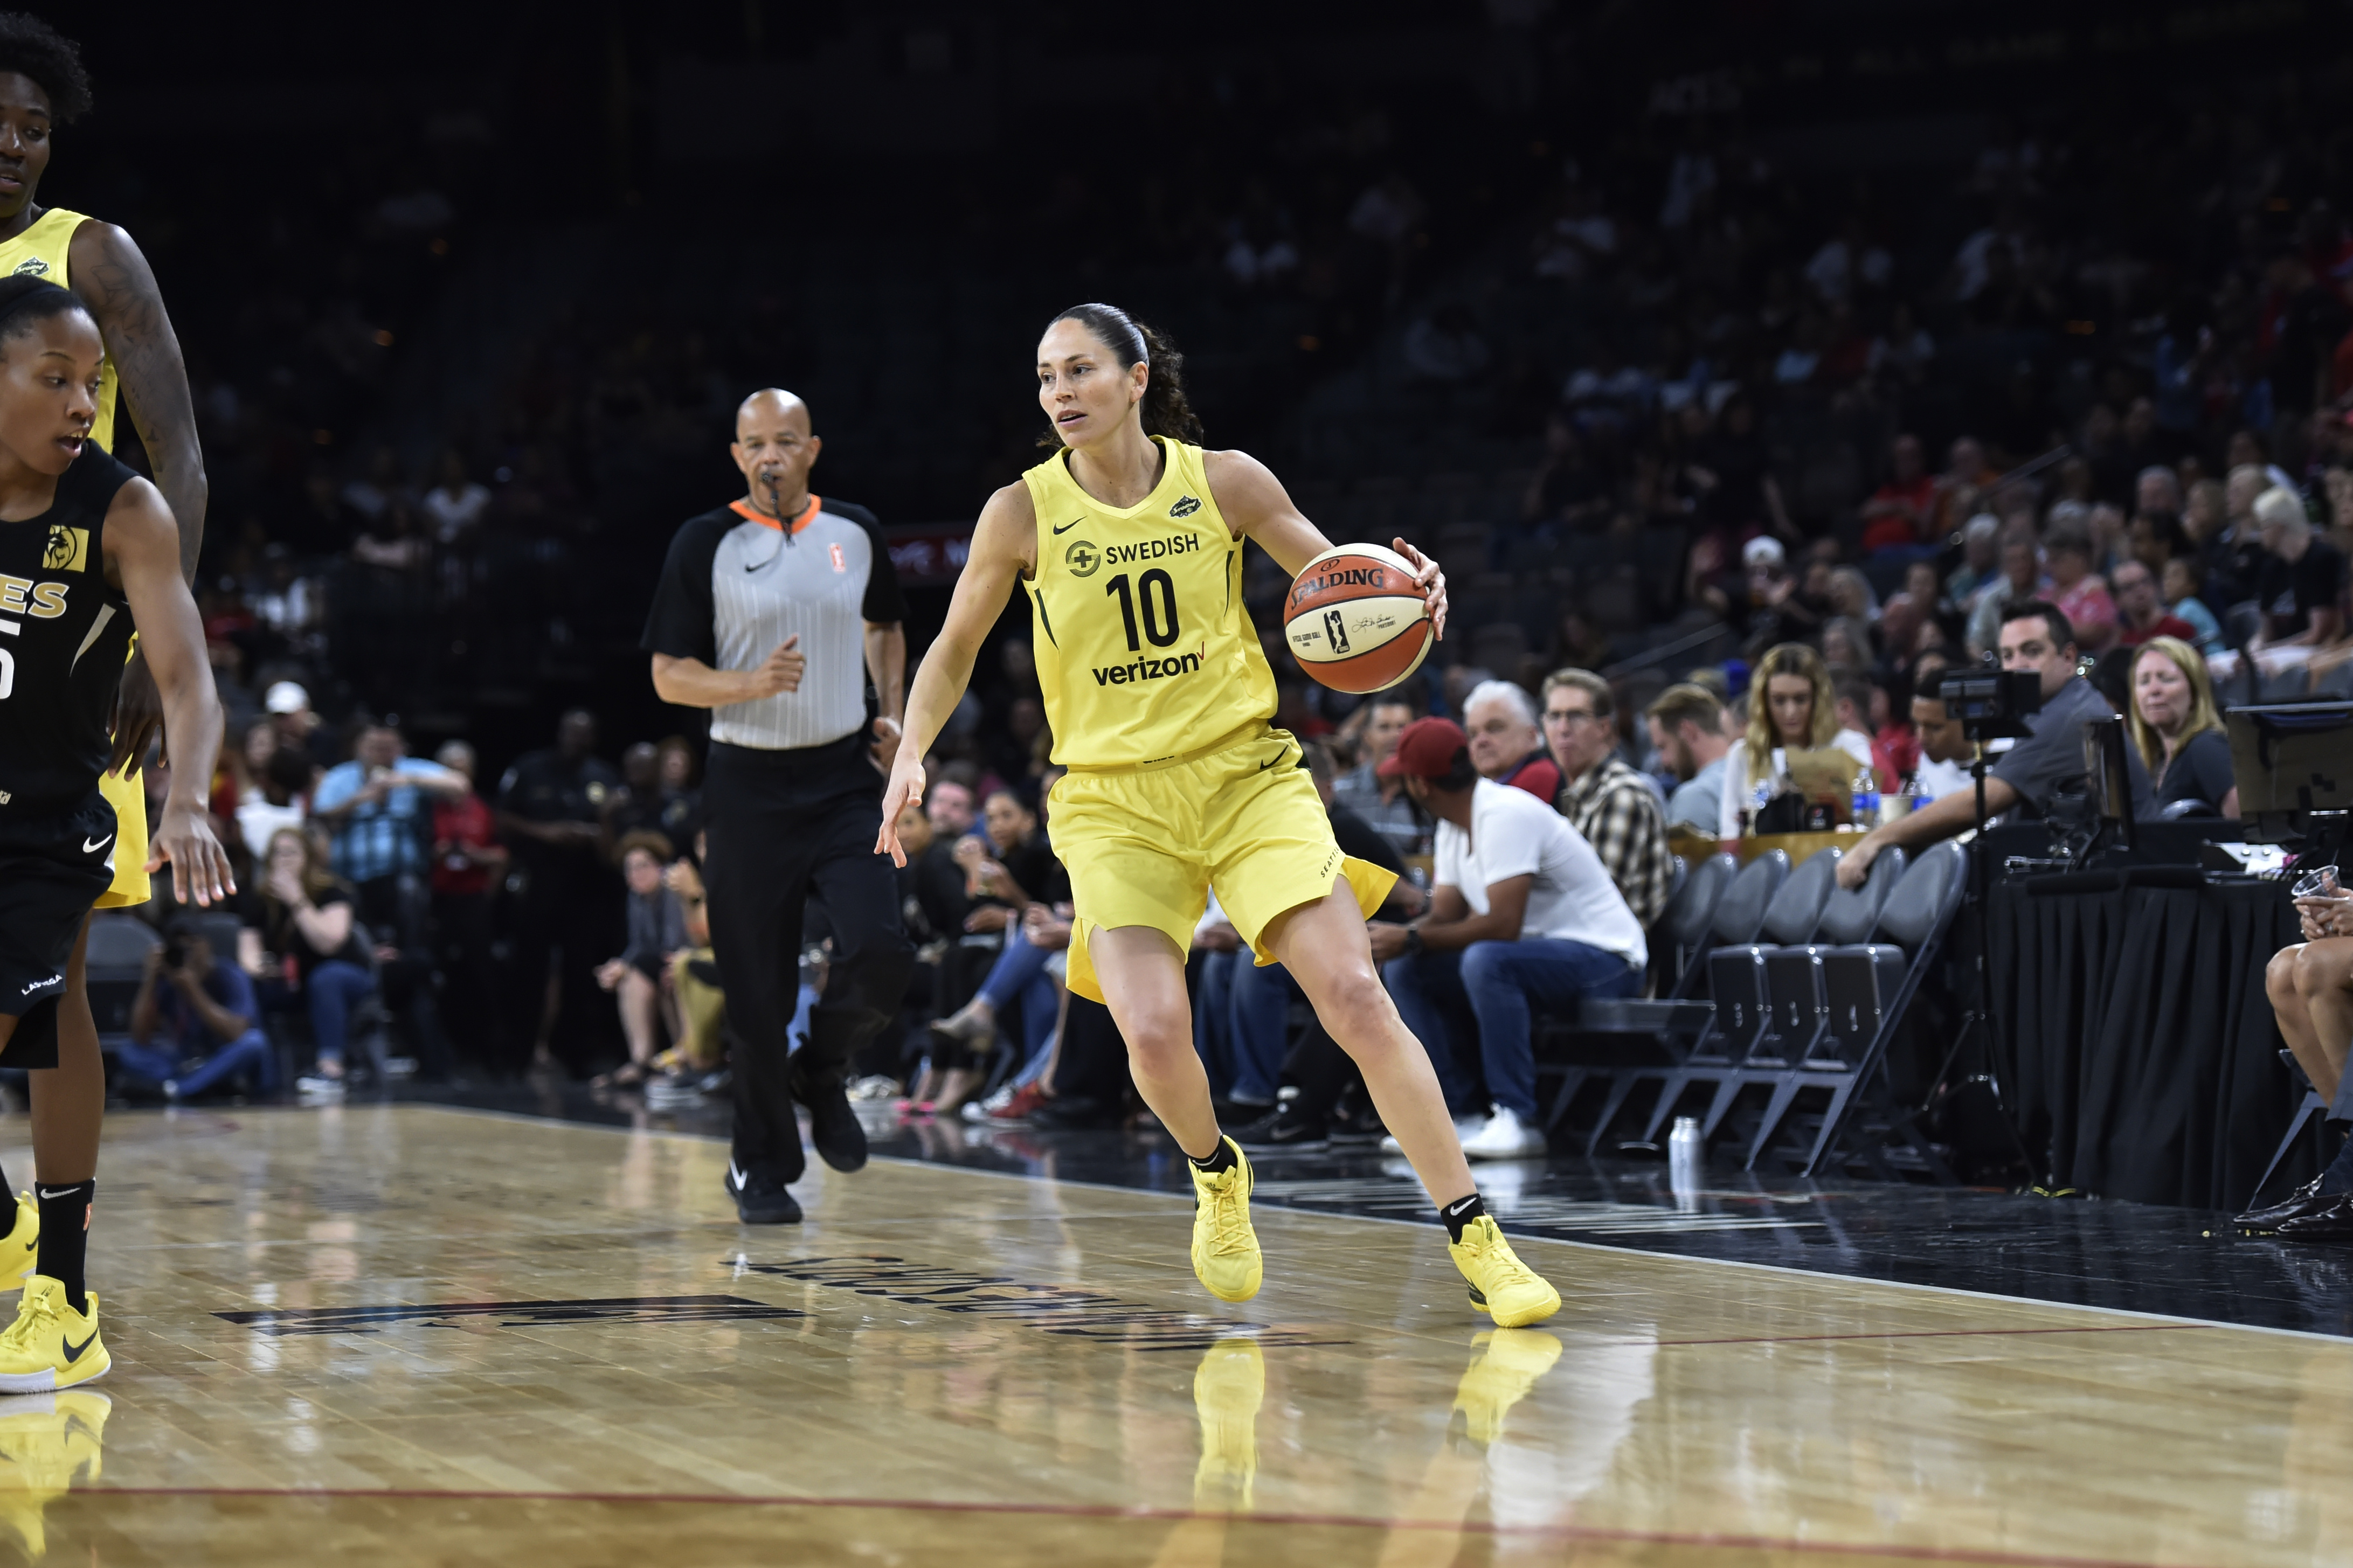 Sue Bird of the Seattle Storm handles the ball against the Las Vegas Aces in a WNBA game on May 27, 2018 at the Mandalay Bay Events Center in Las Vegas, Nevada.